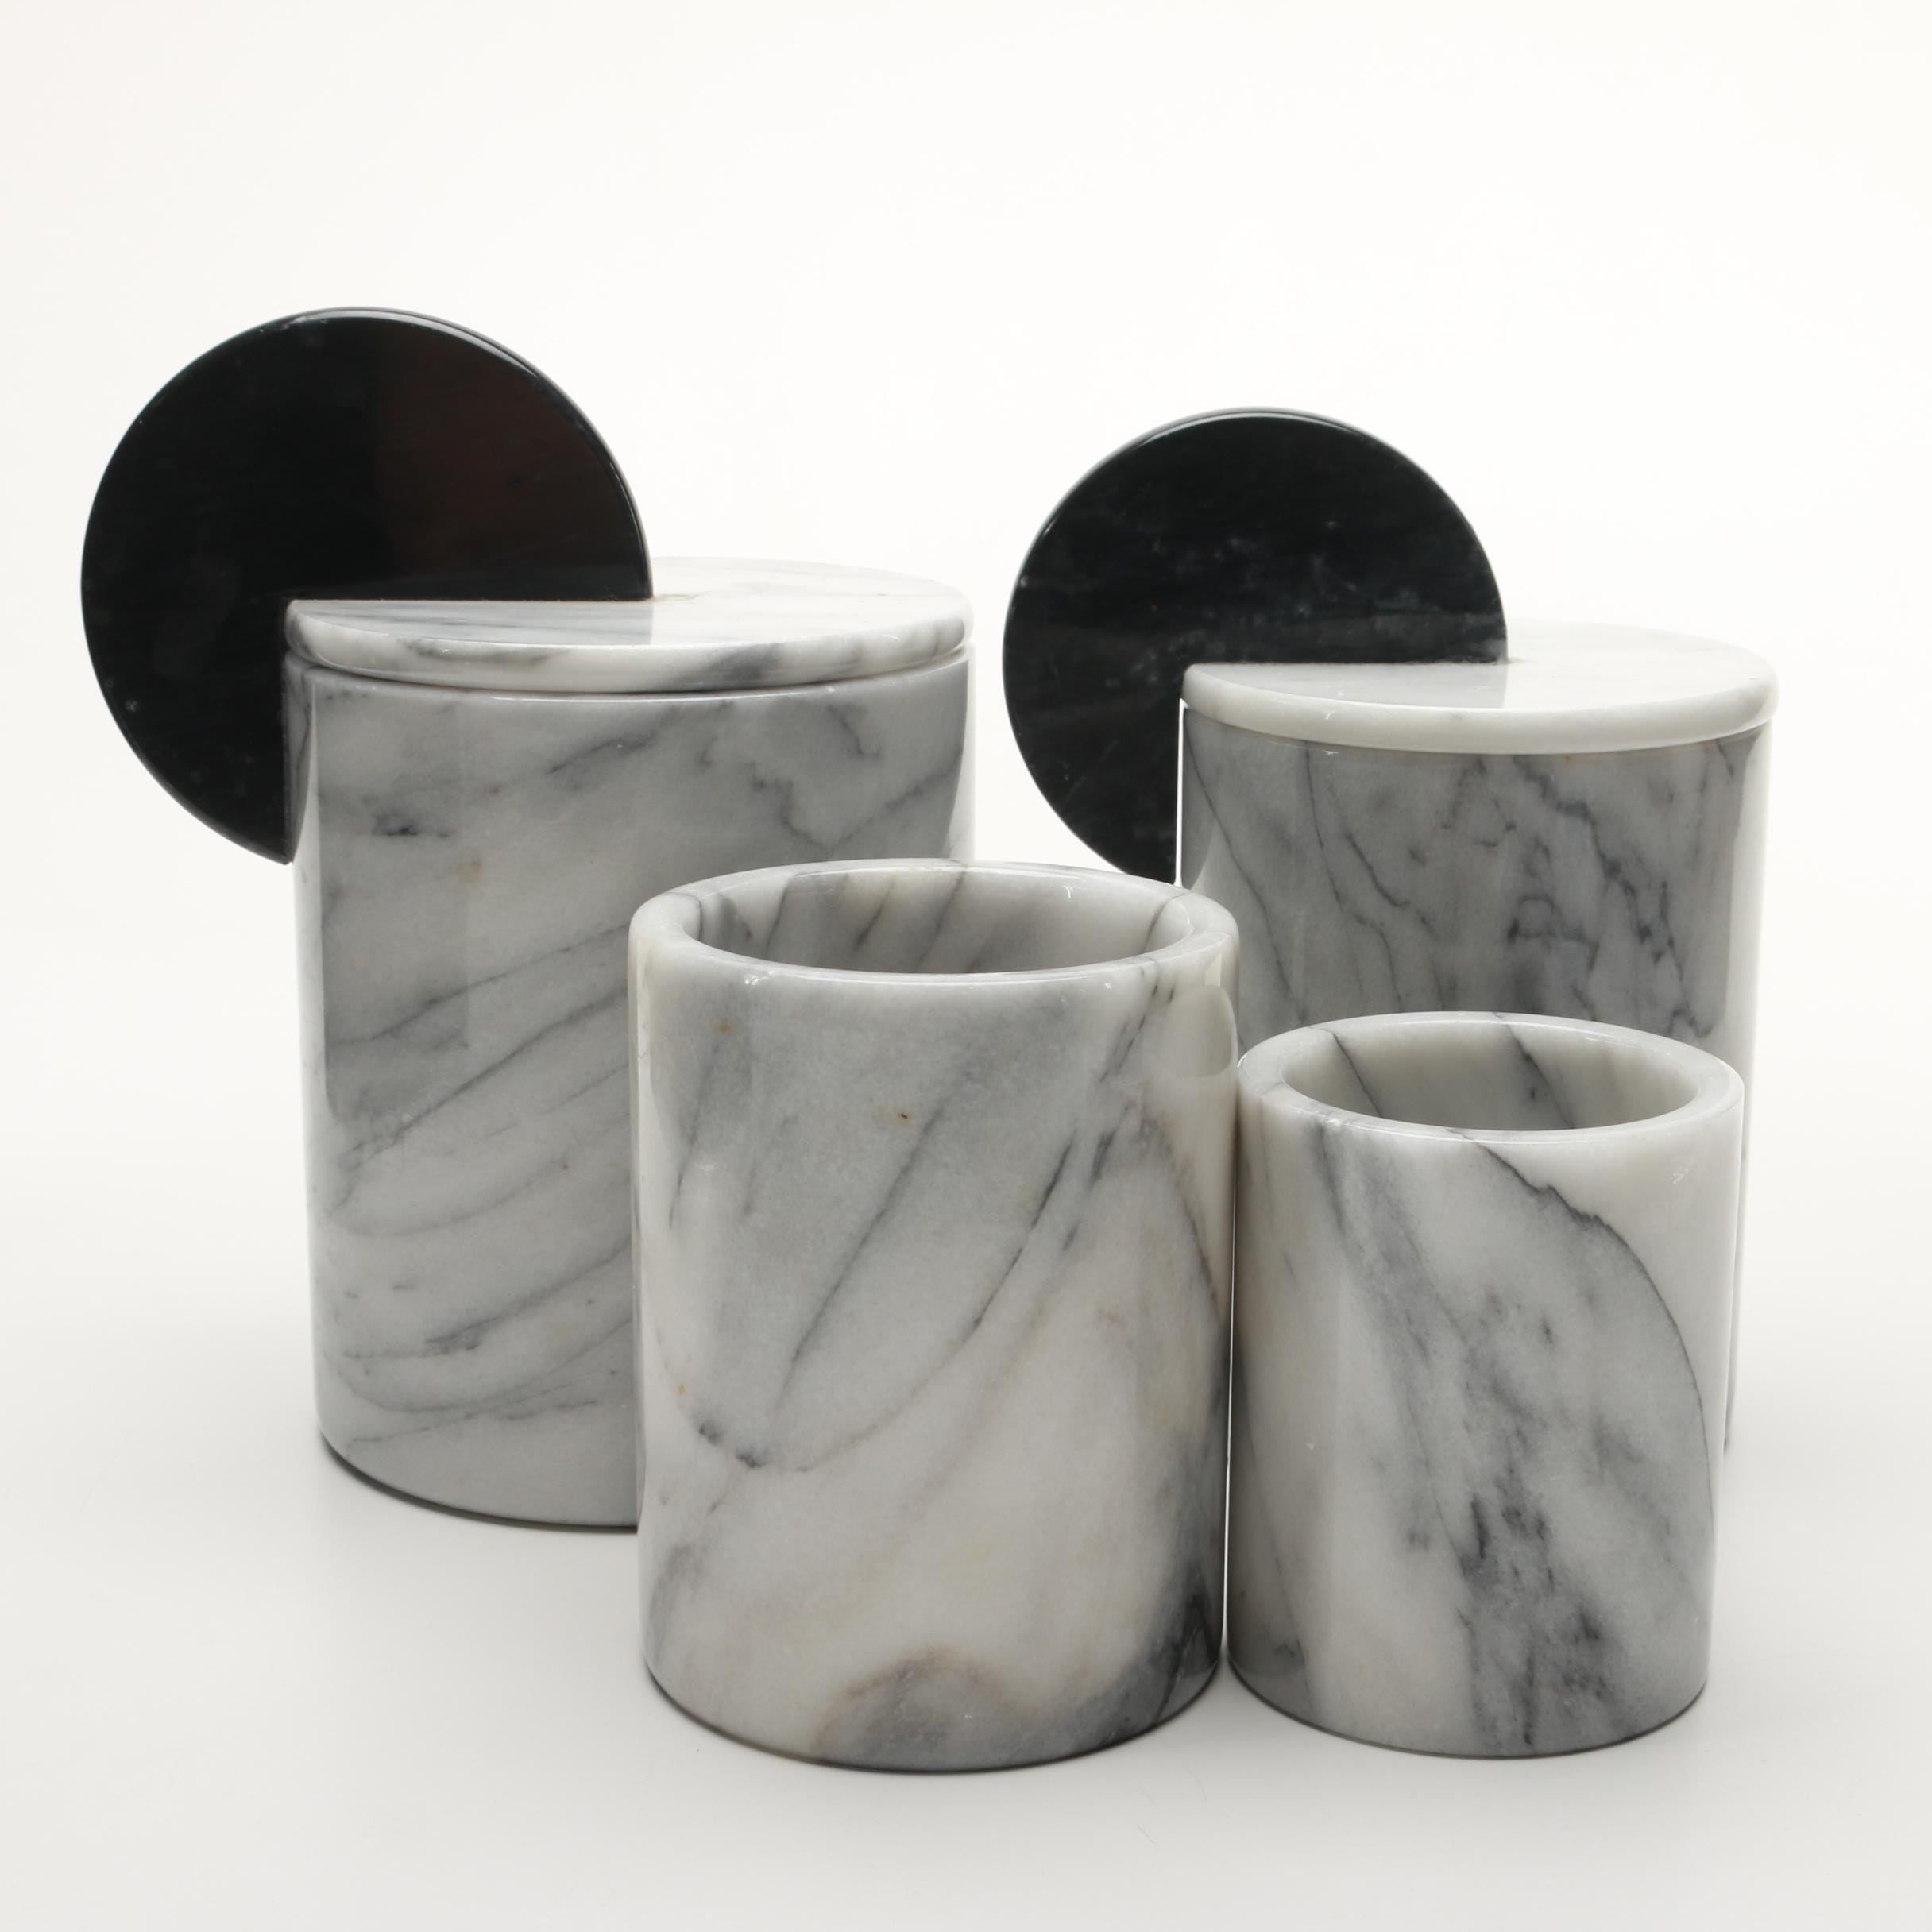 Marble Canisters with Lids